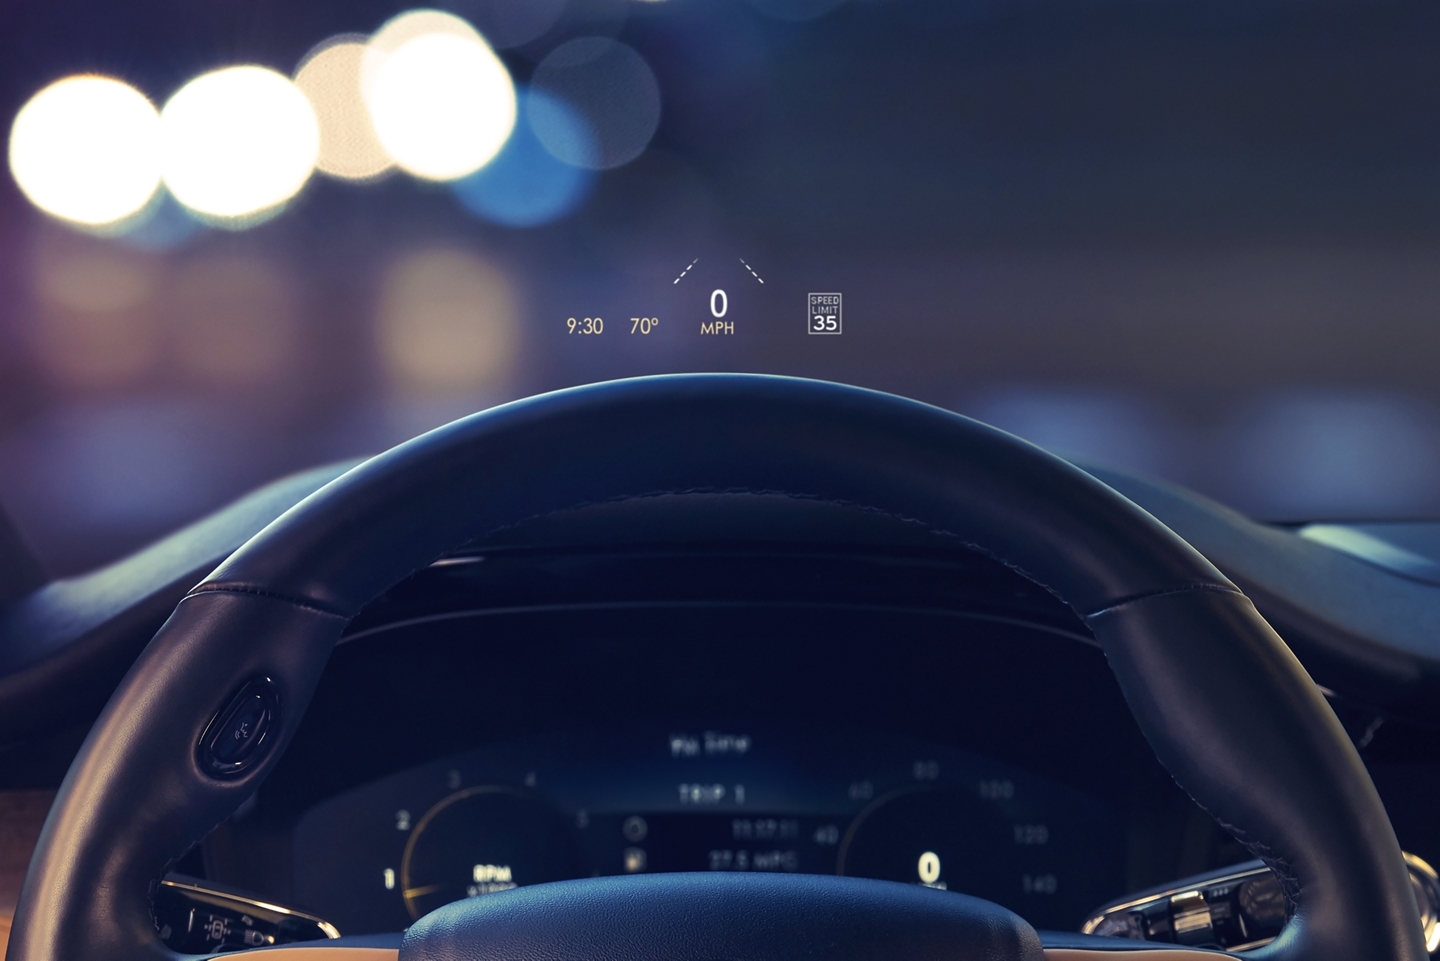 Heads up display inside the 2020 Lincoln Corsair